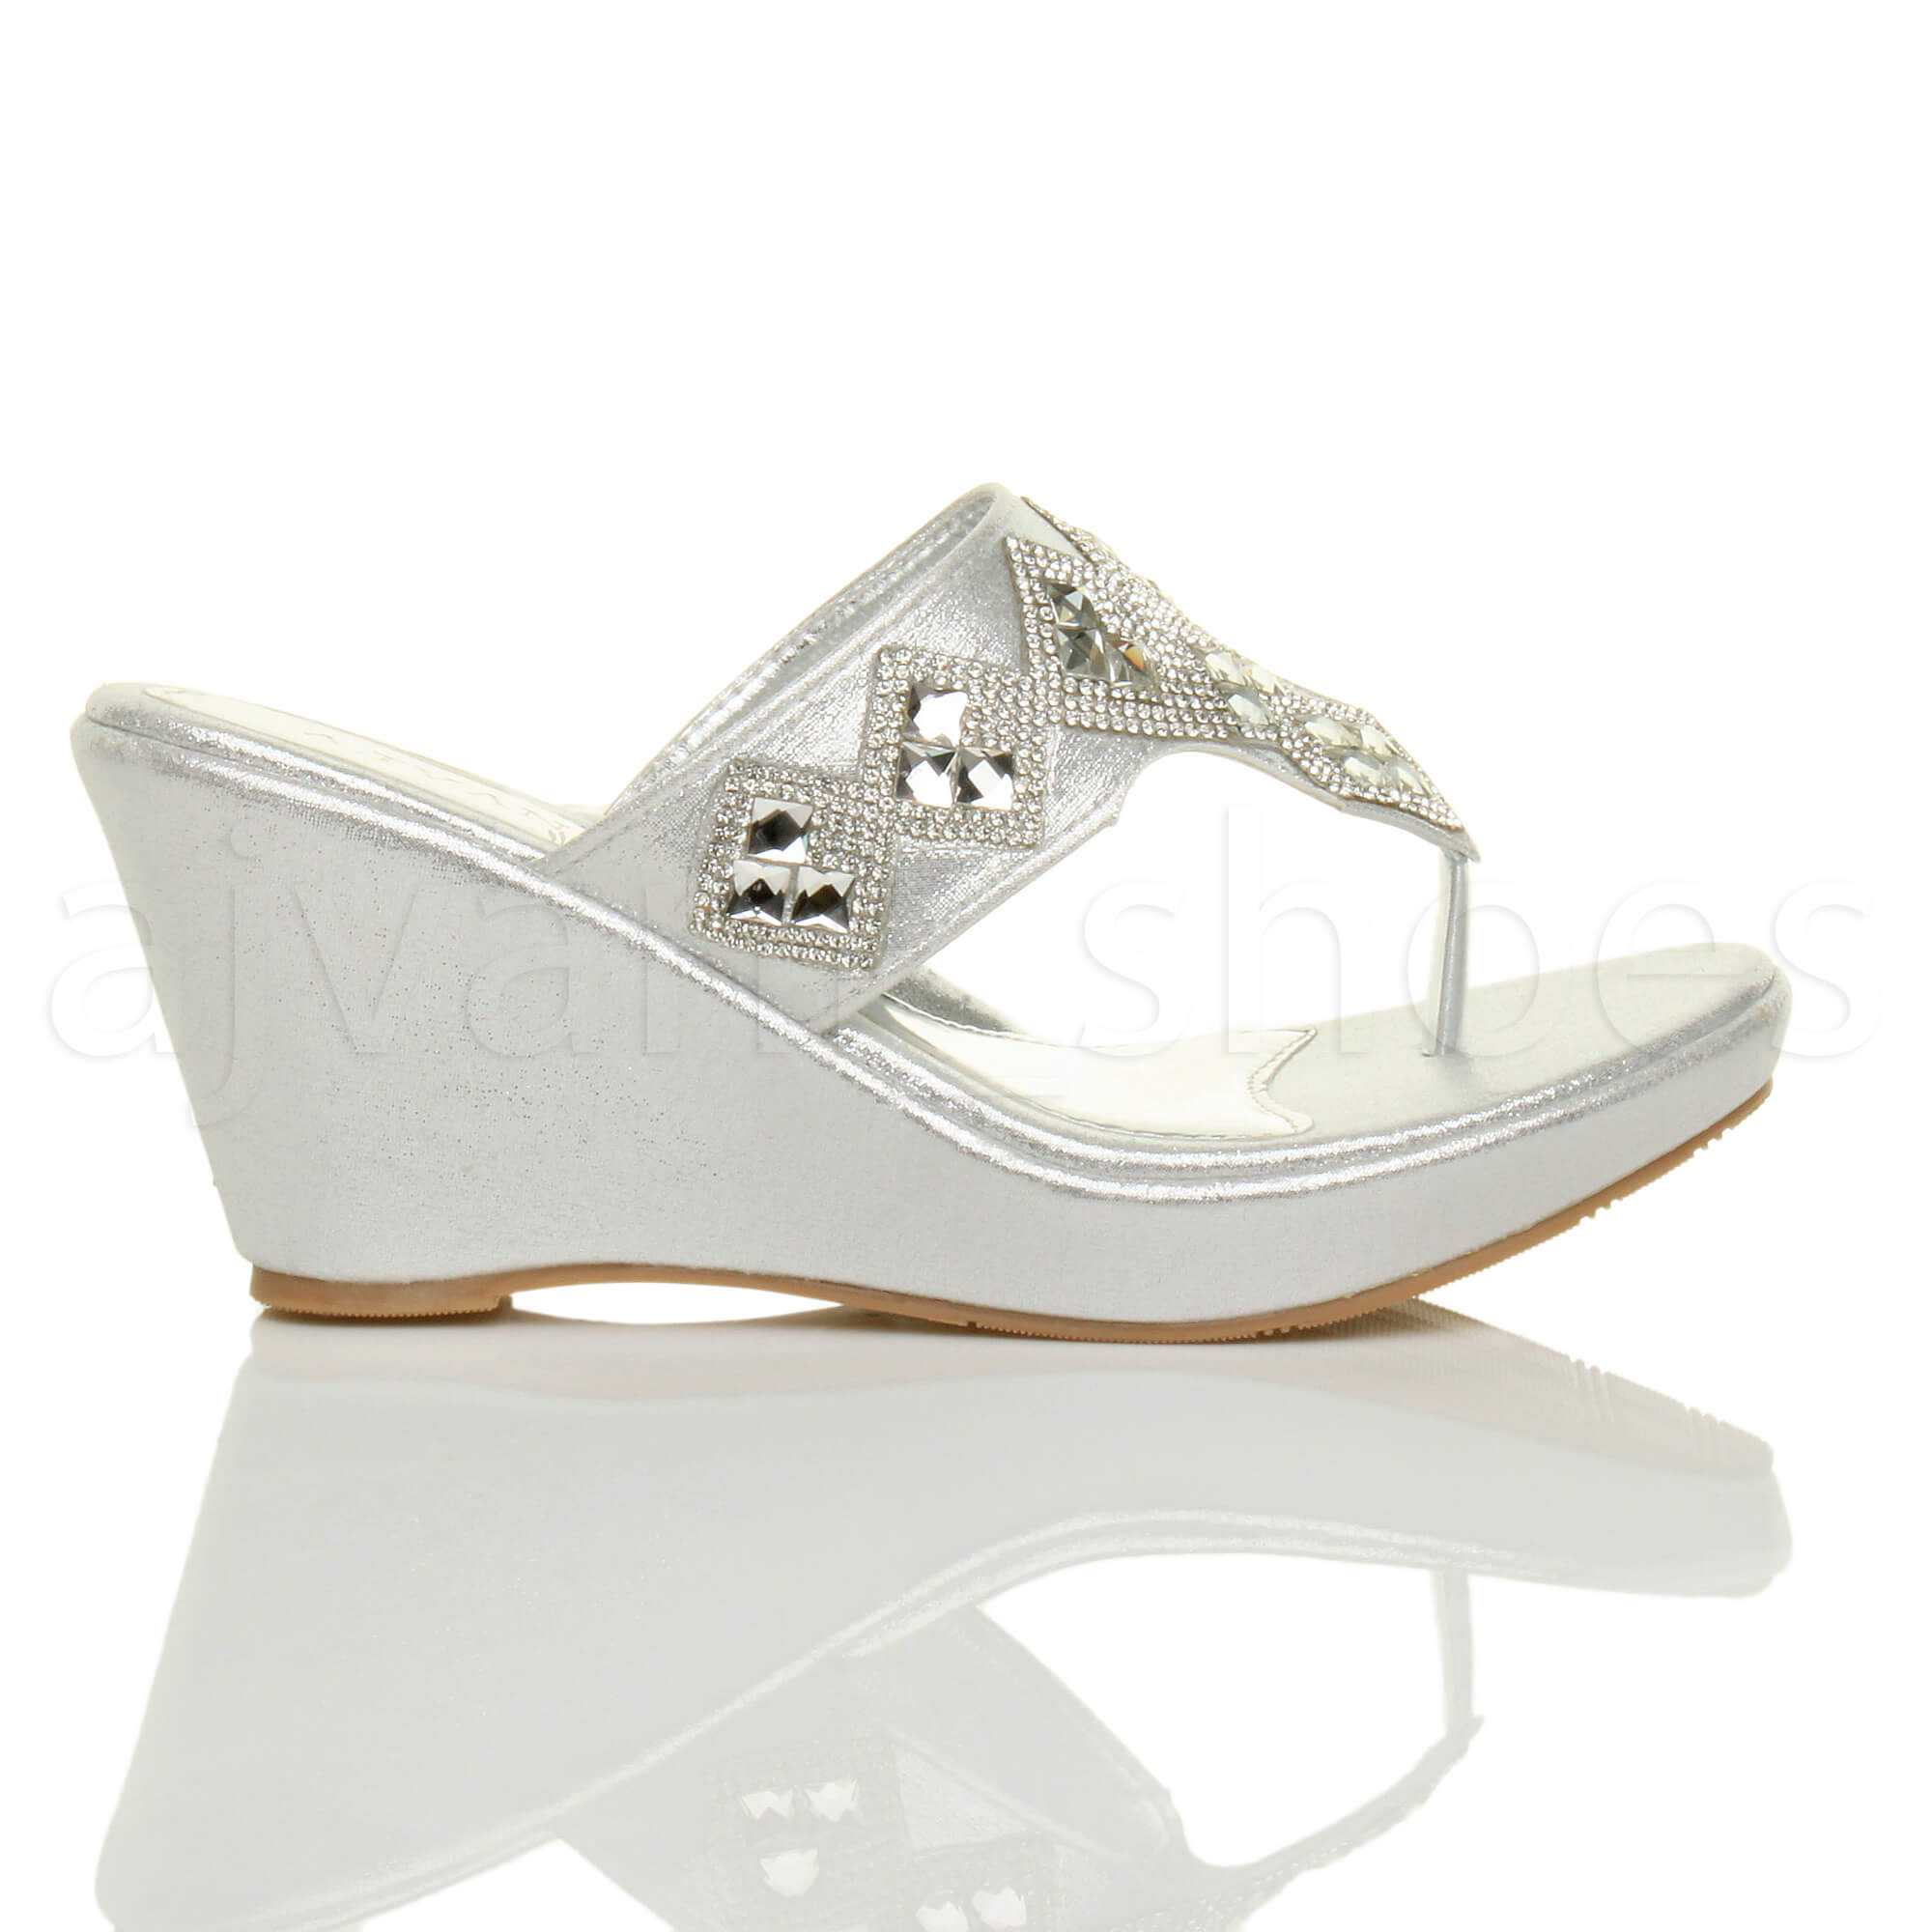 WOMENS-LADIES-HIGH-WEDGE-T-BAR-TOE-POST-DIAMANTE-PLATFORM-MULES-SANDALS-SIZE thumbnail 11